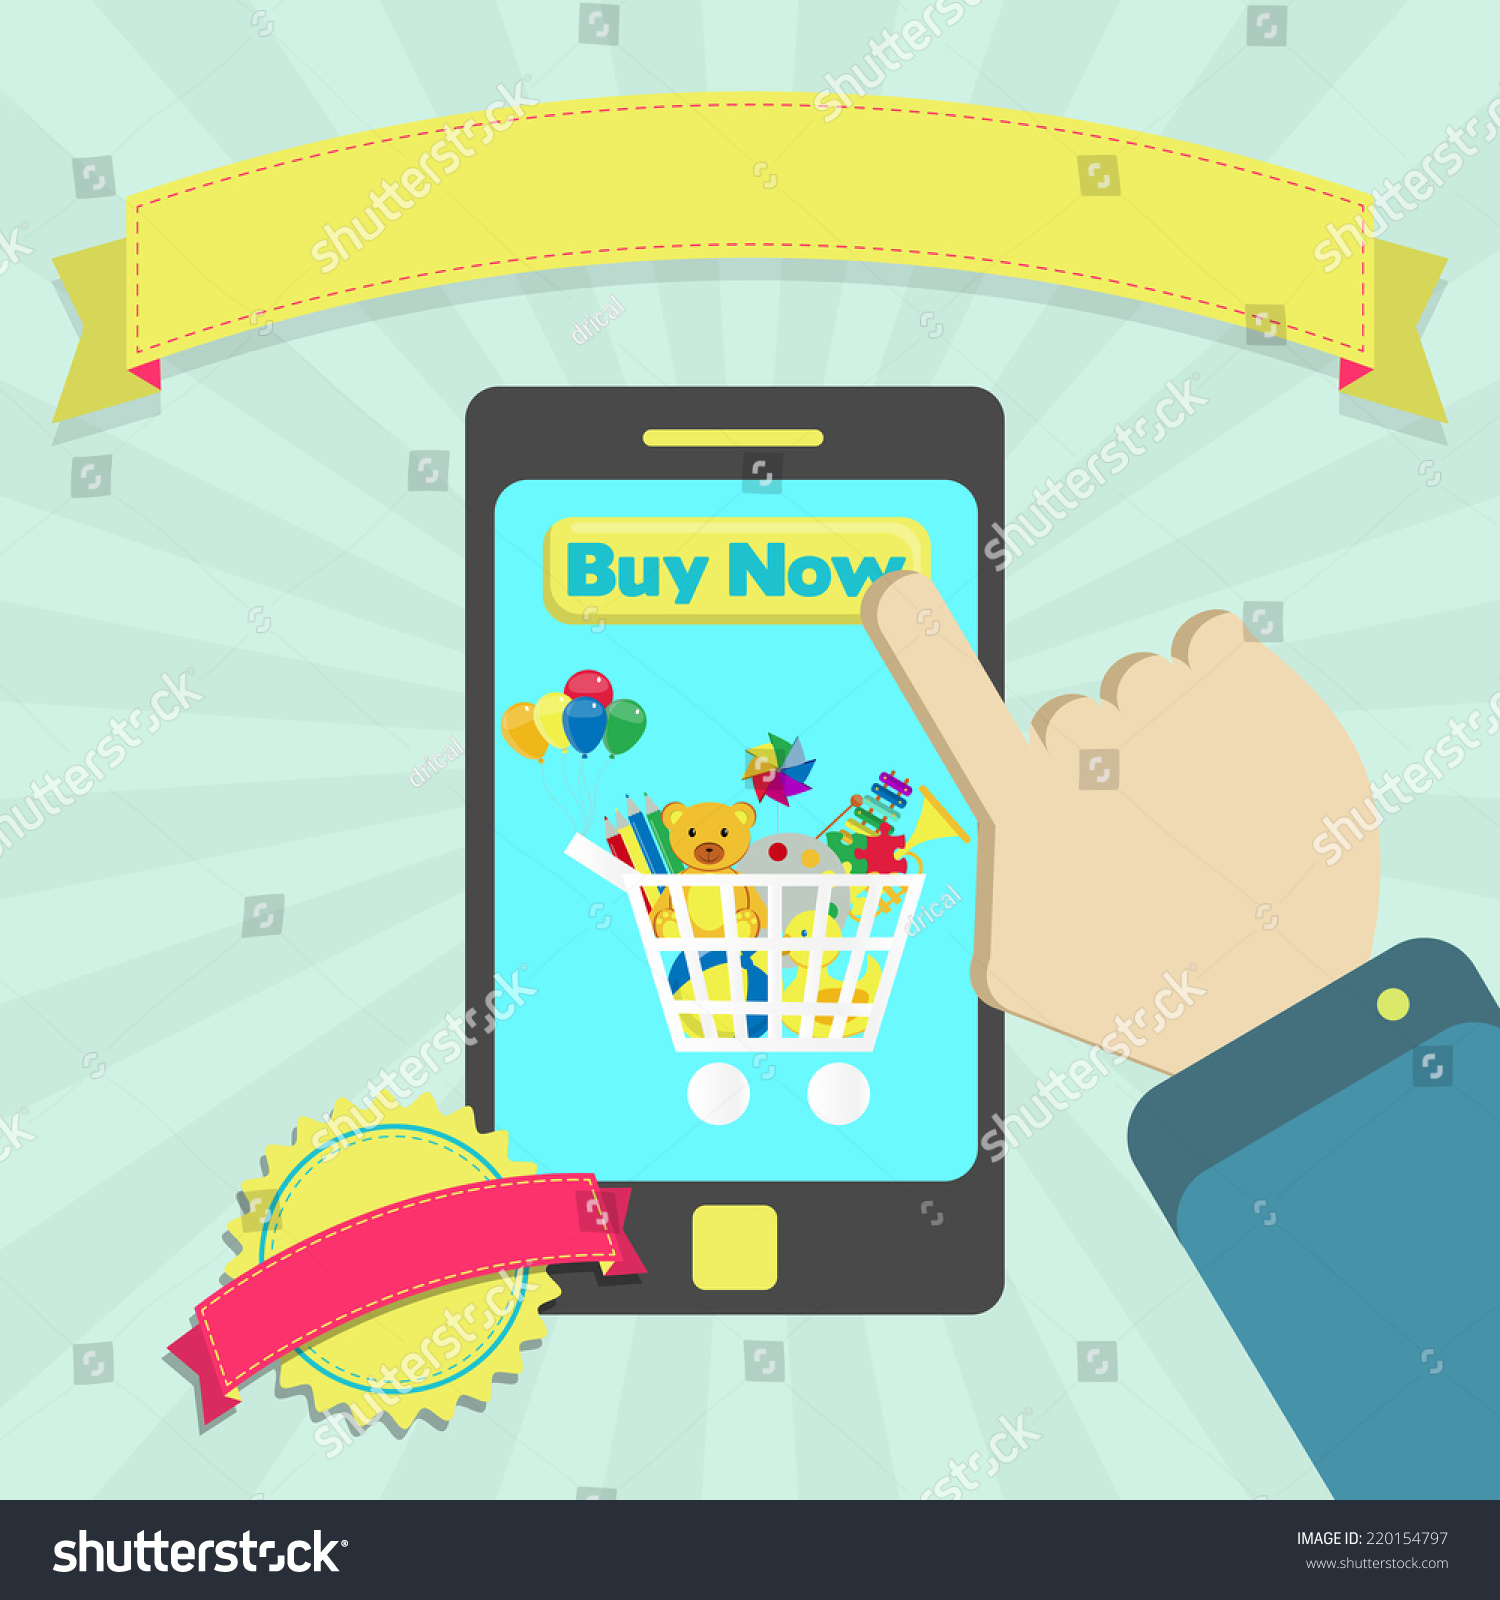 Buy Toys line Through Phone Buy Stock Vector